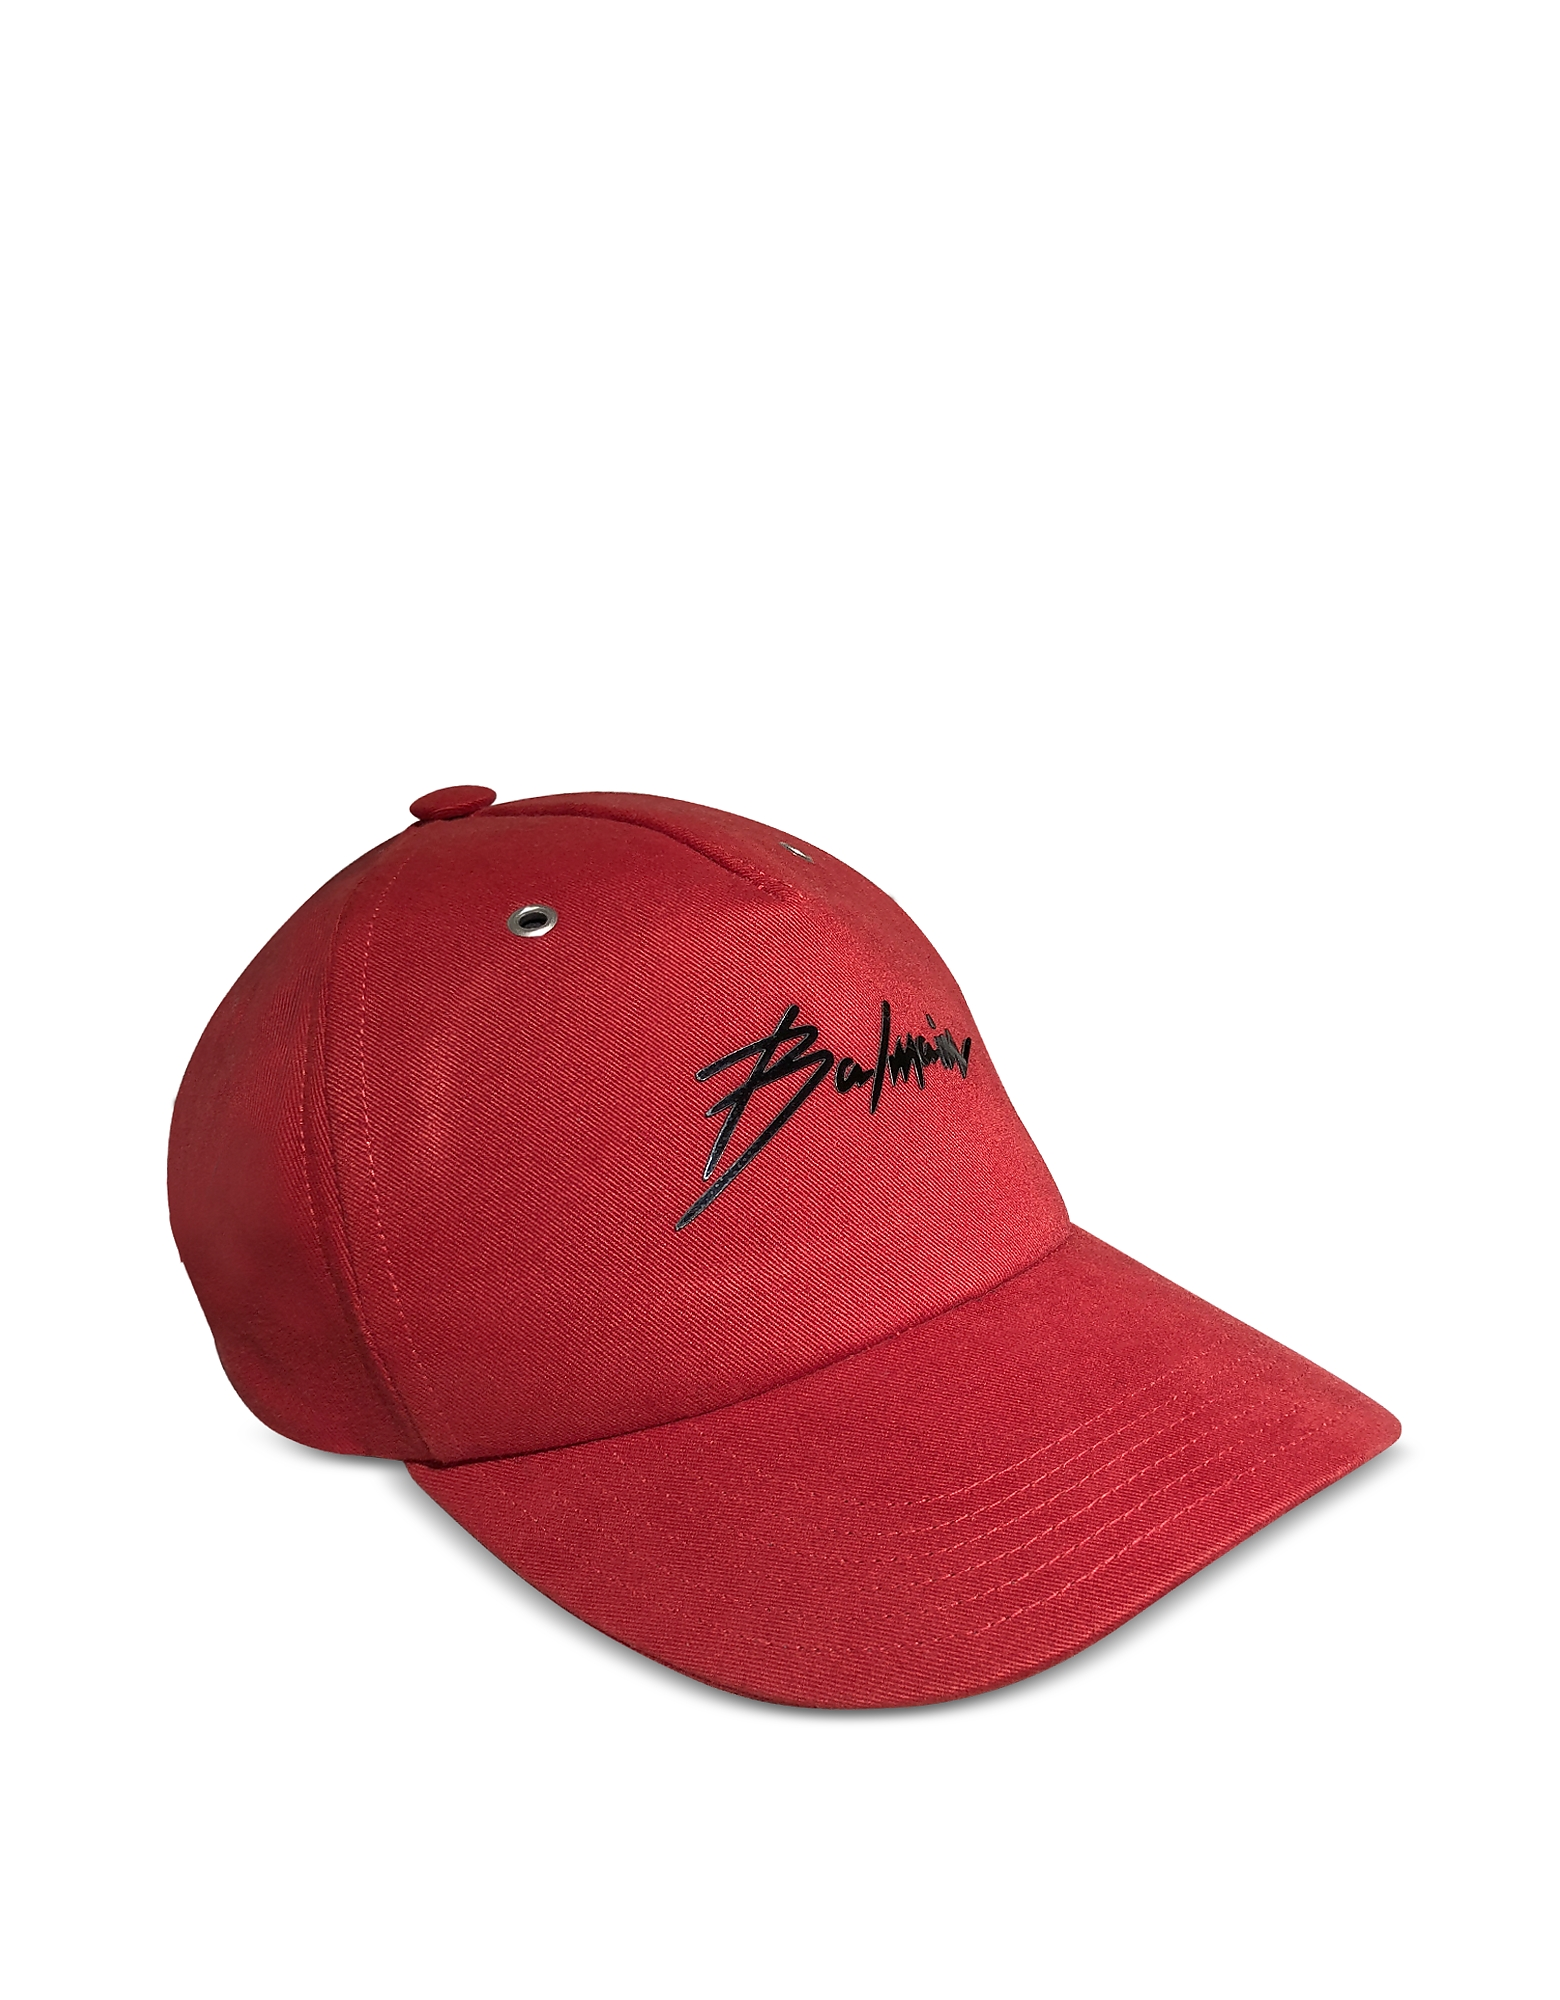 Cotton Signature Baseball Cap